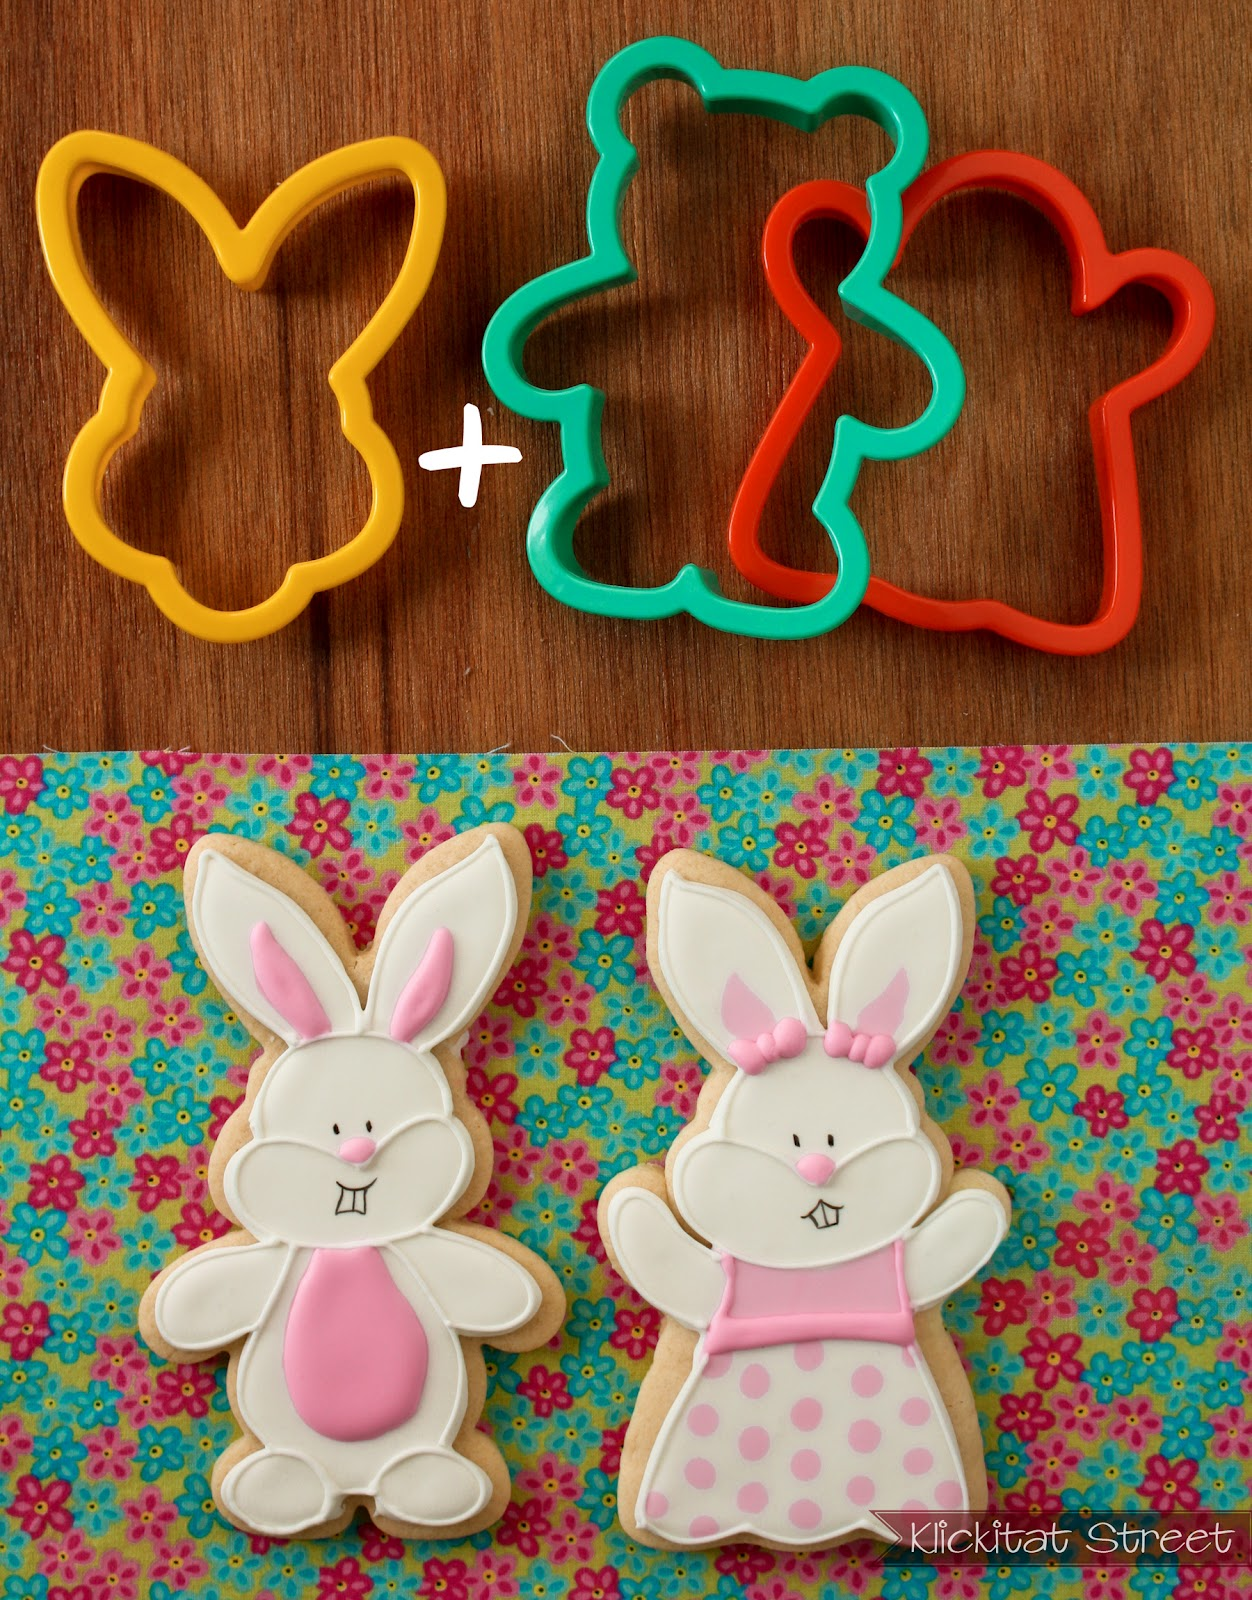 Easter bunny rabbit cookies made by combining bunnny face cookie cutter with a ghost and bear